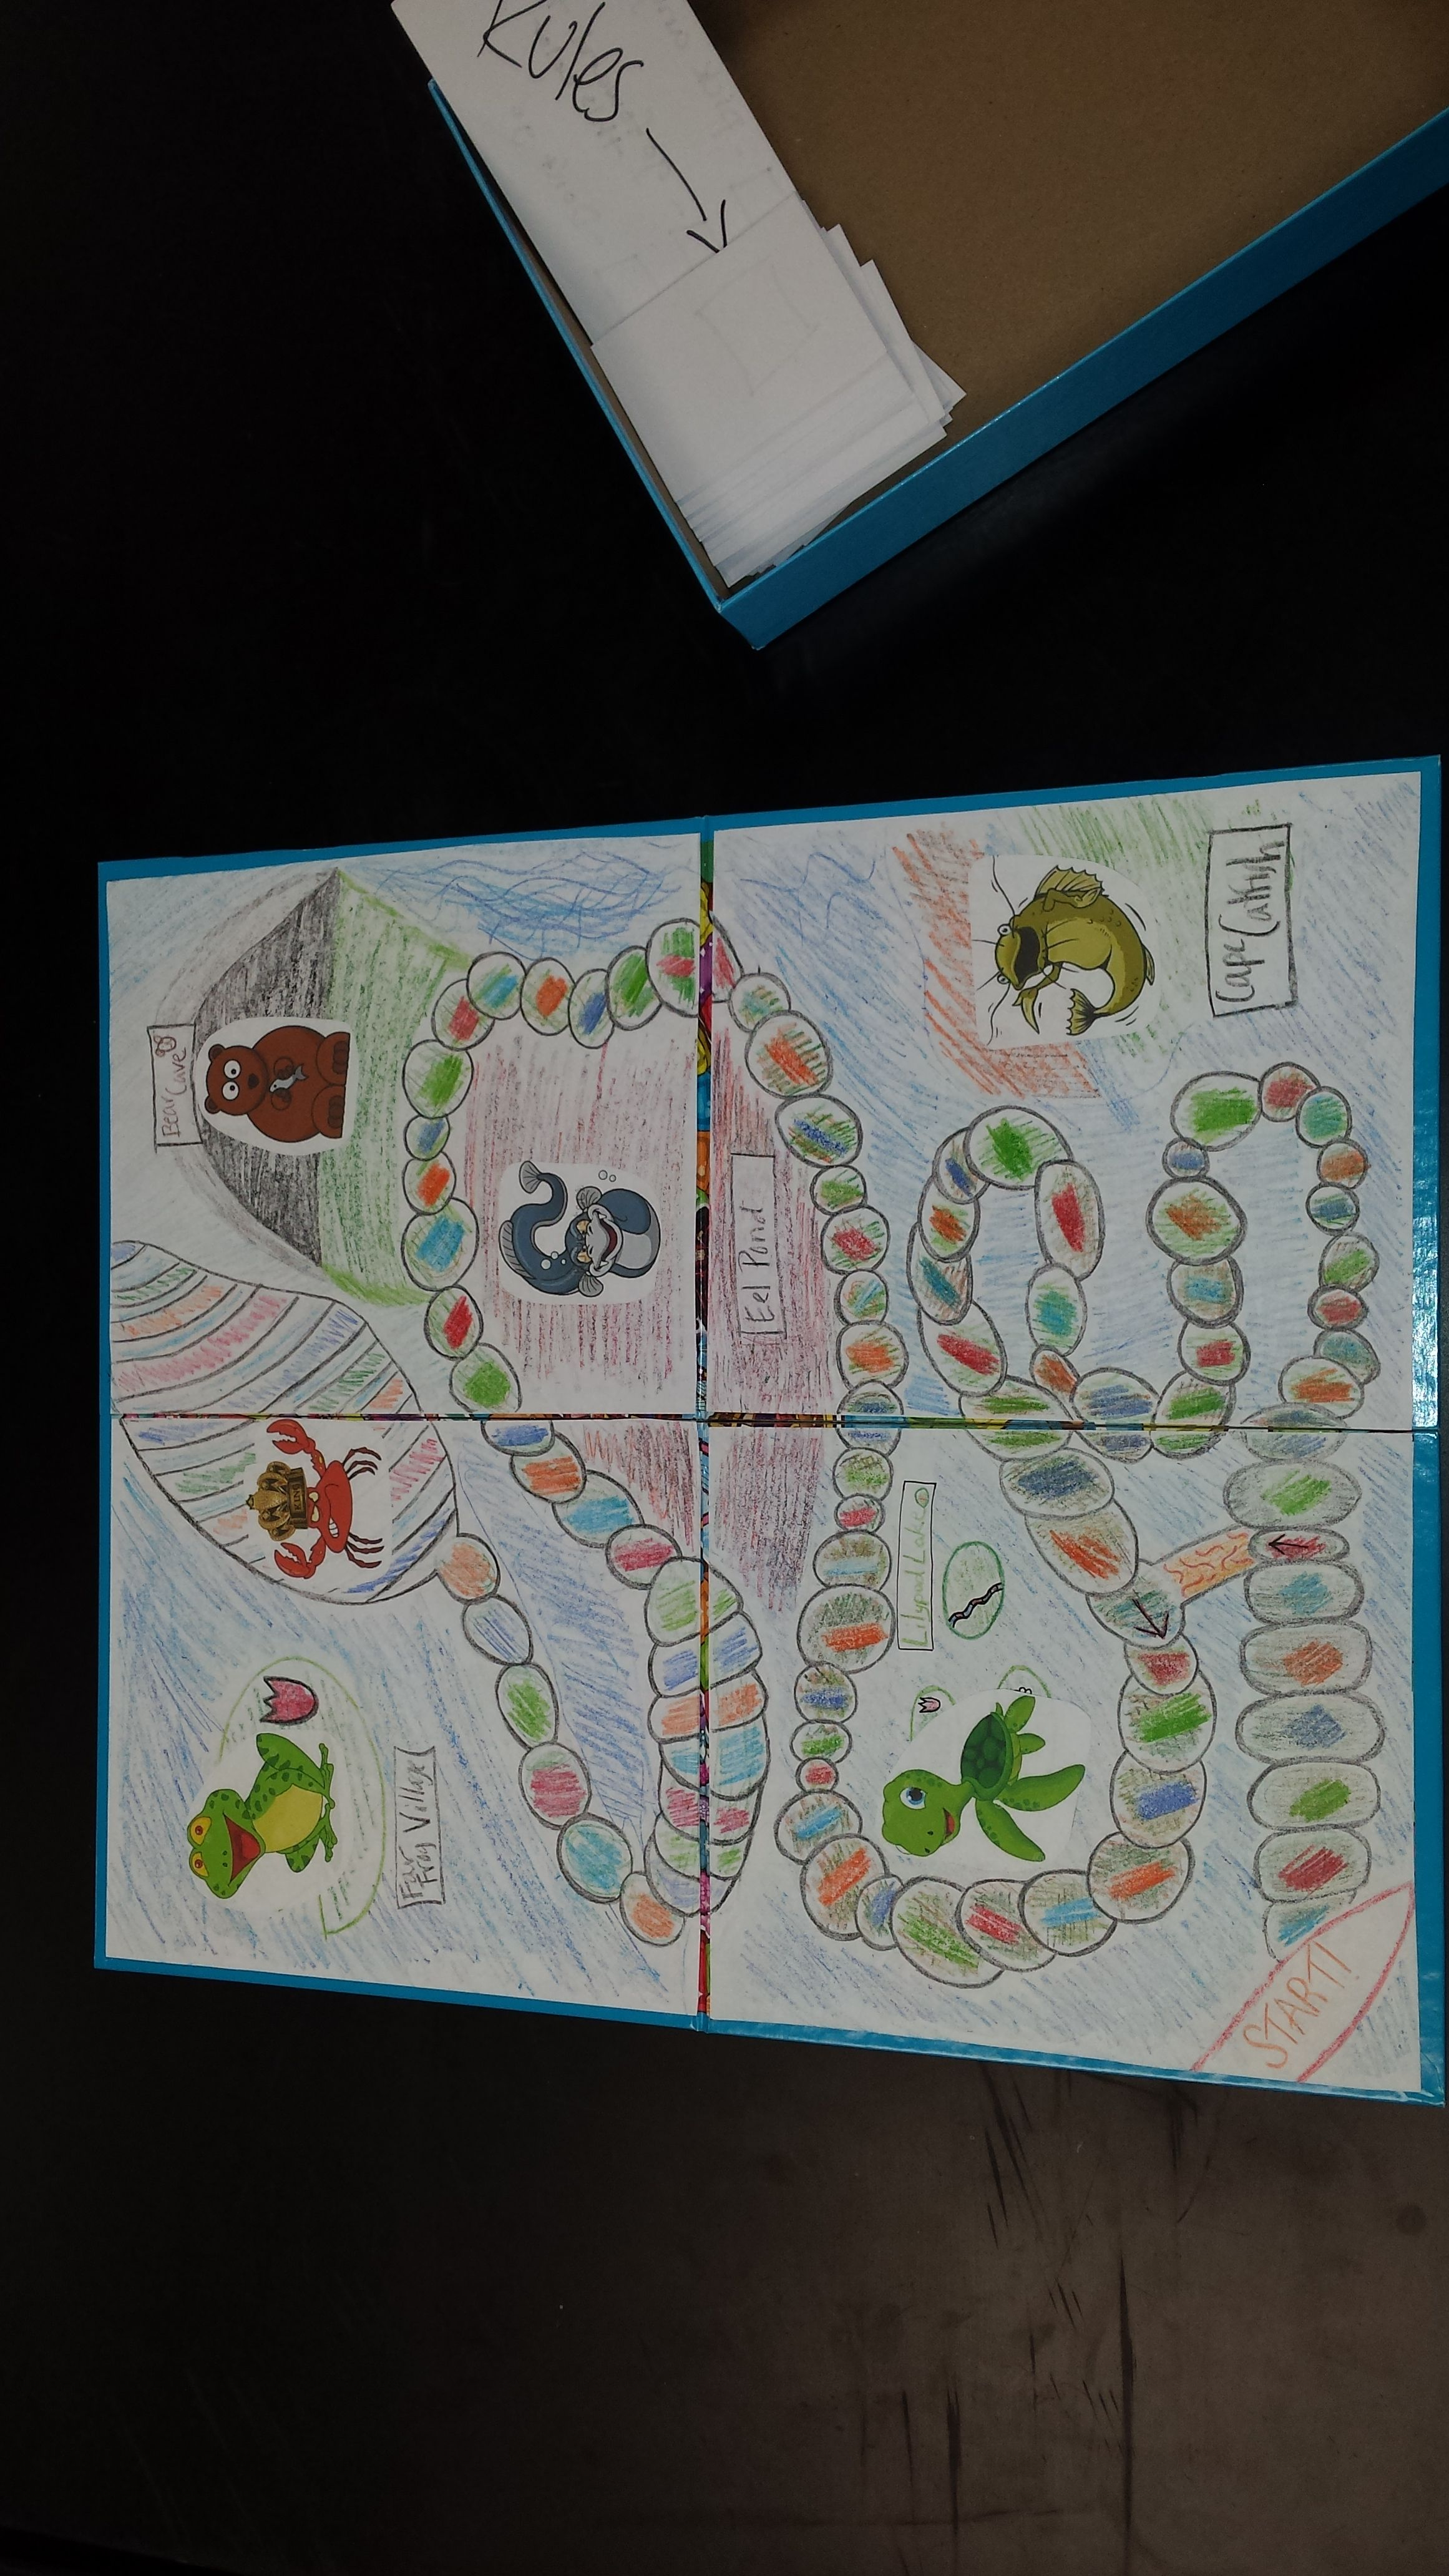 Candy Land Biome (With images) Art projects, Candyland, Art